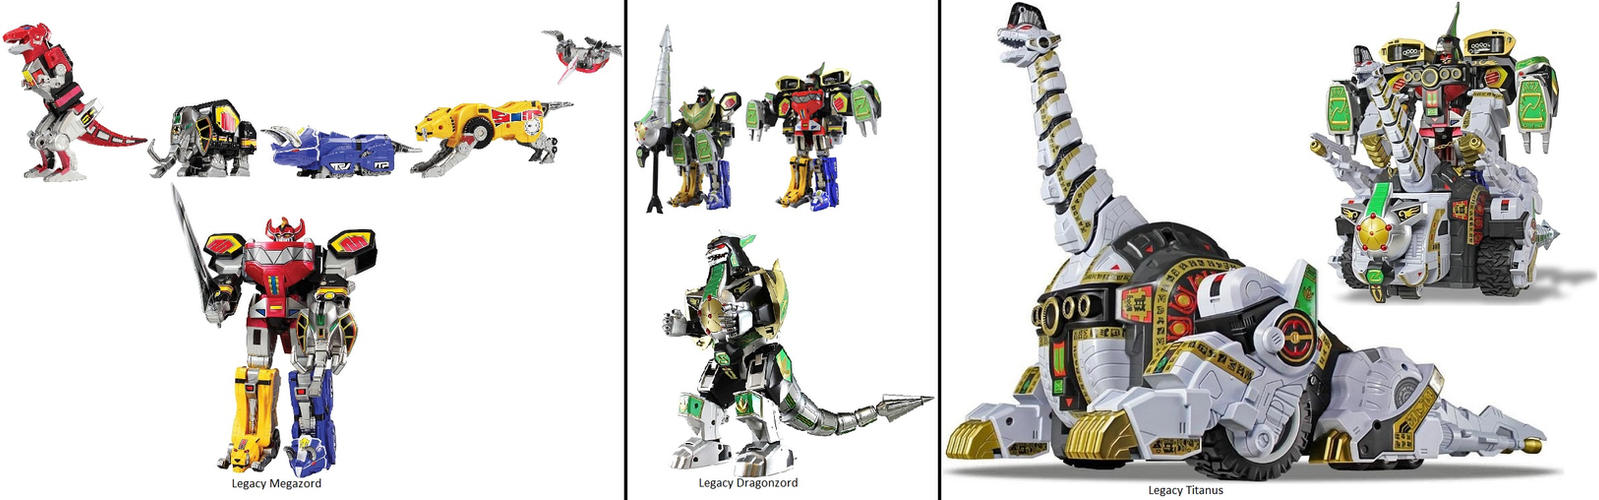 Mighty Morphin Power Rangers Legacy Collection by ChipmunkRaccoon2